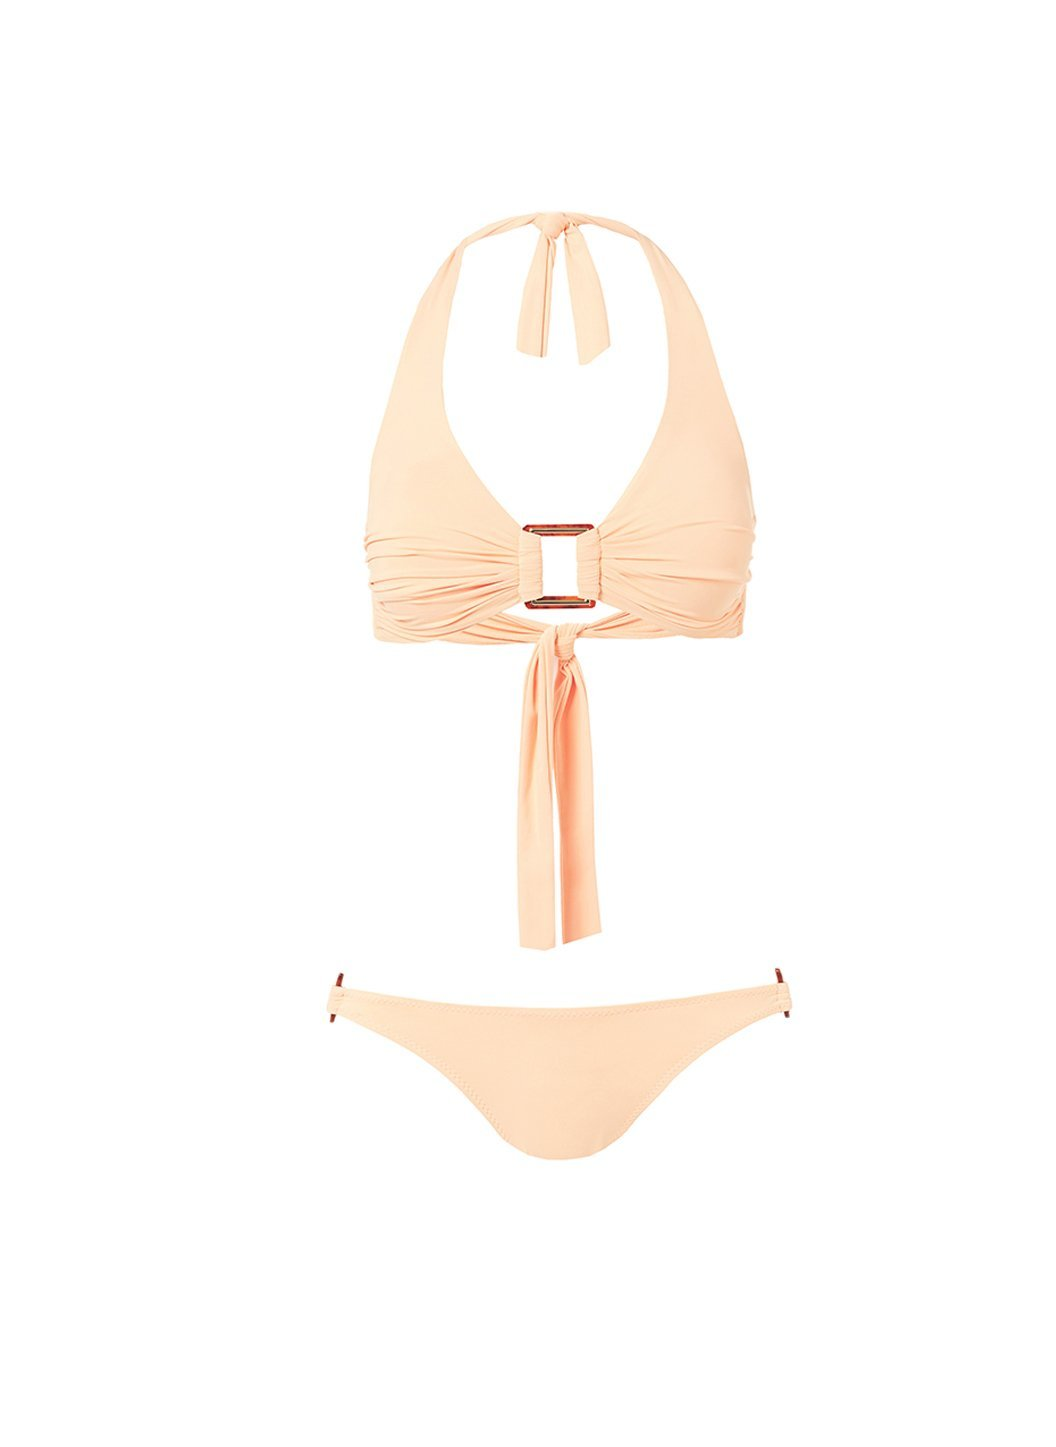 paris mango halterneck rectangle trim bikini 2019